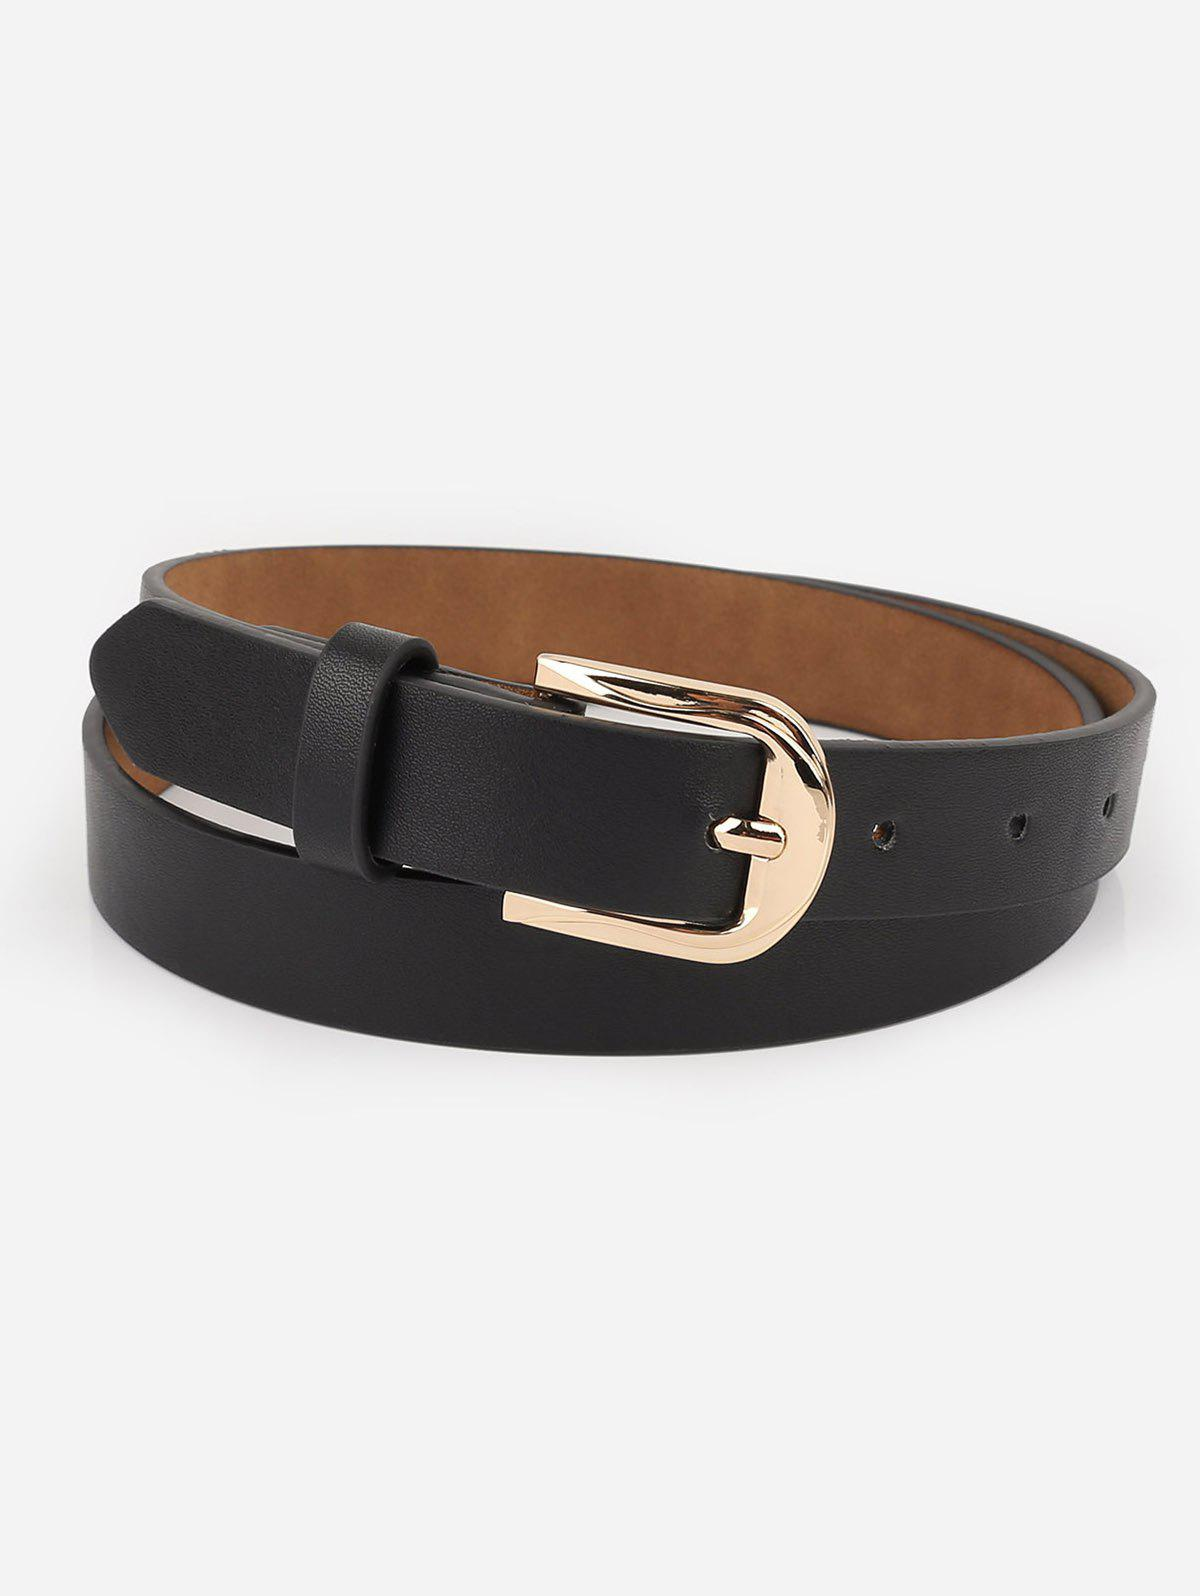 Alloy Buckle Artificial Leather Casual Belt - BLACK